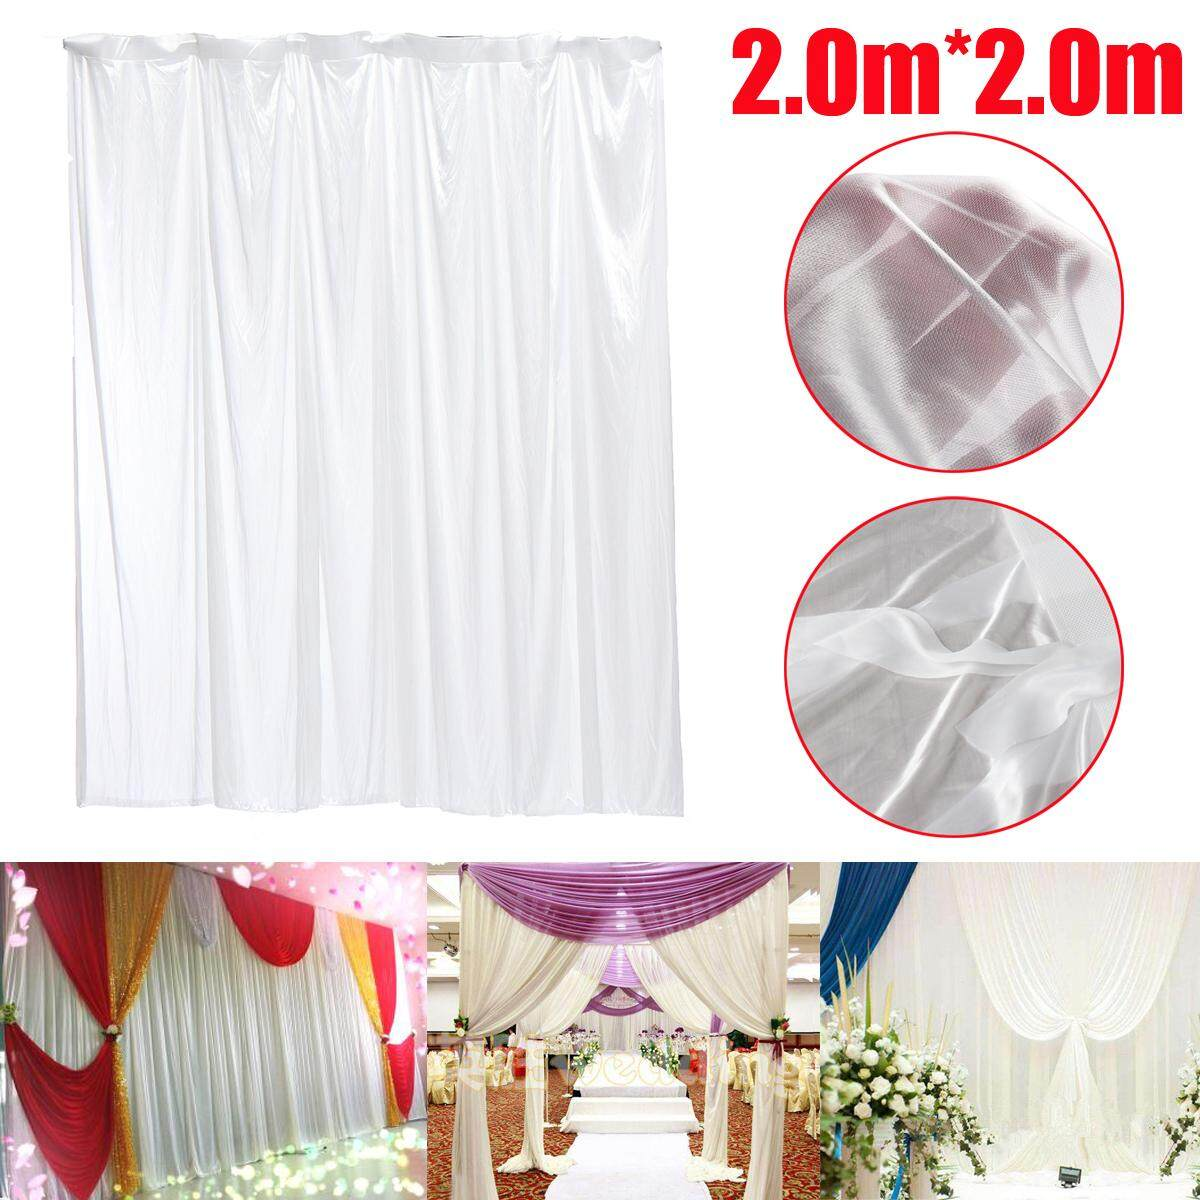 White Wedding Party Backdrop Curtain Drape Stage Background Decor Studio - intl